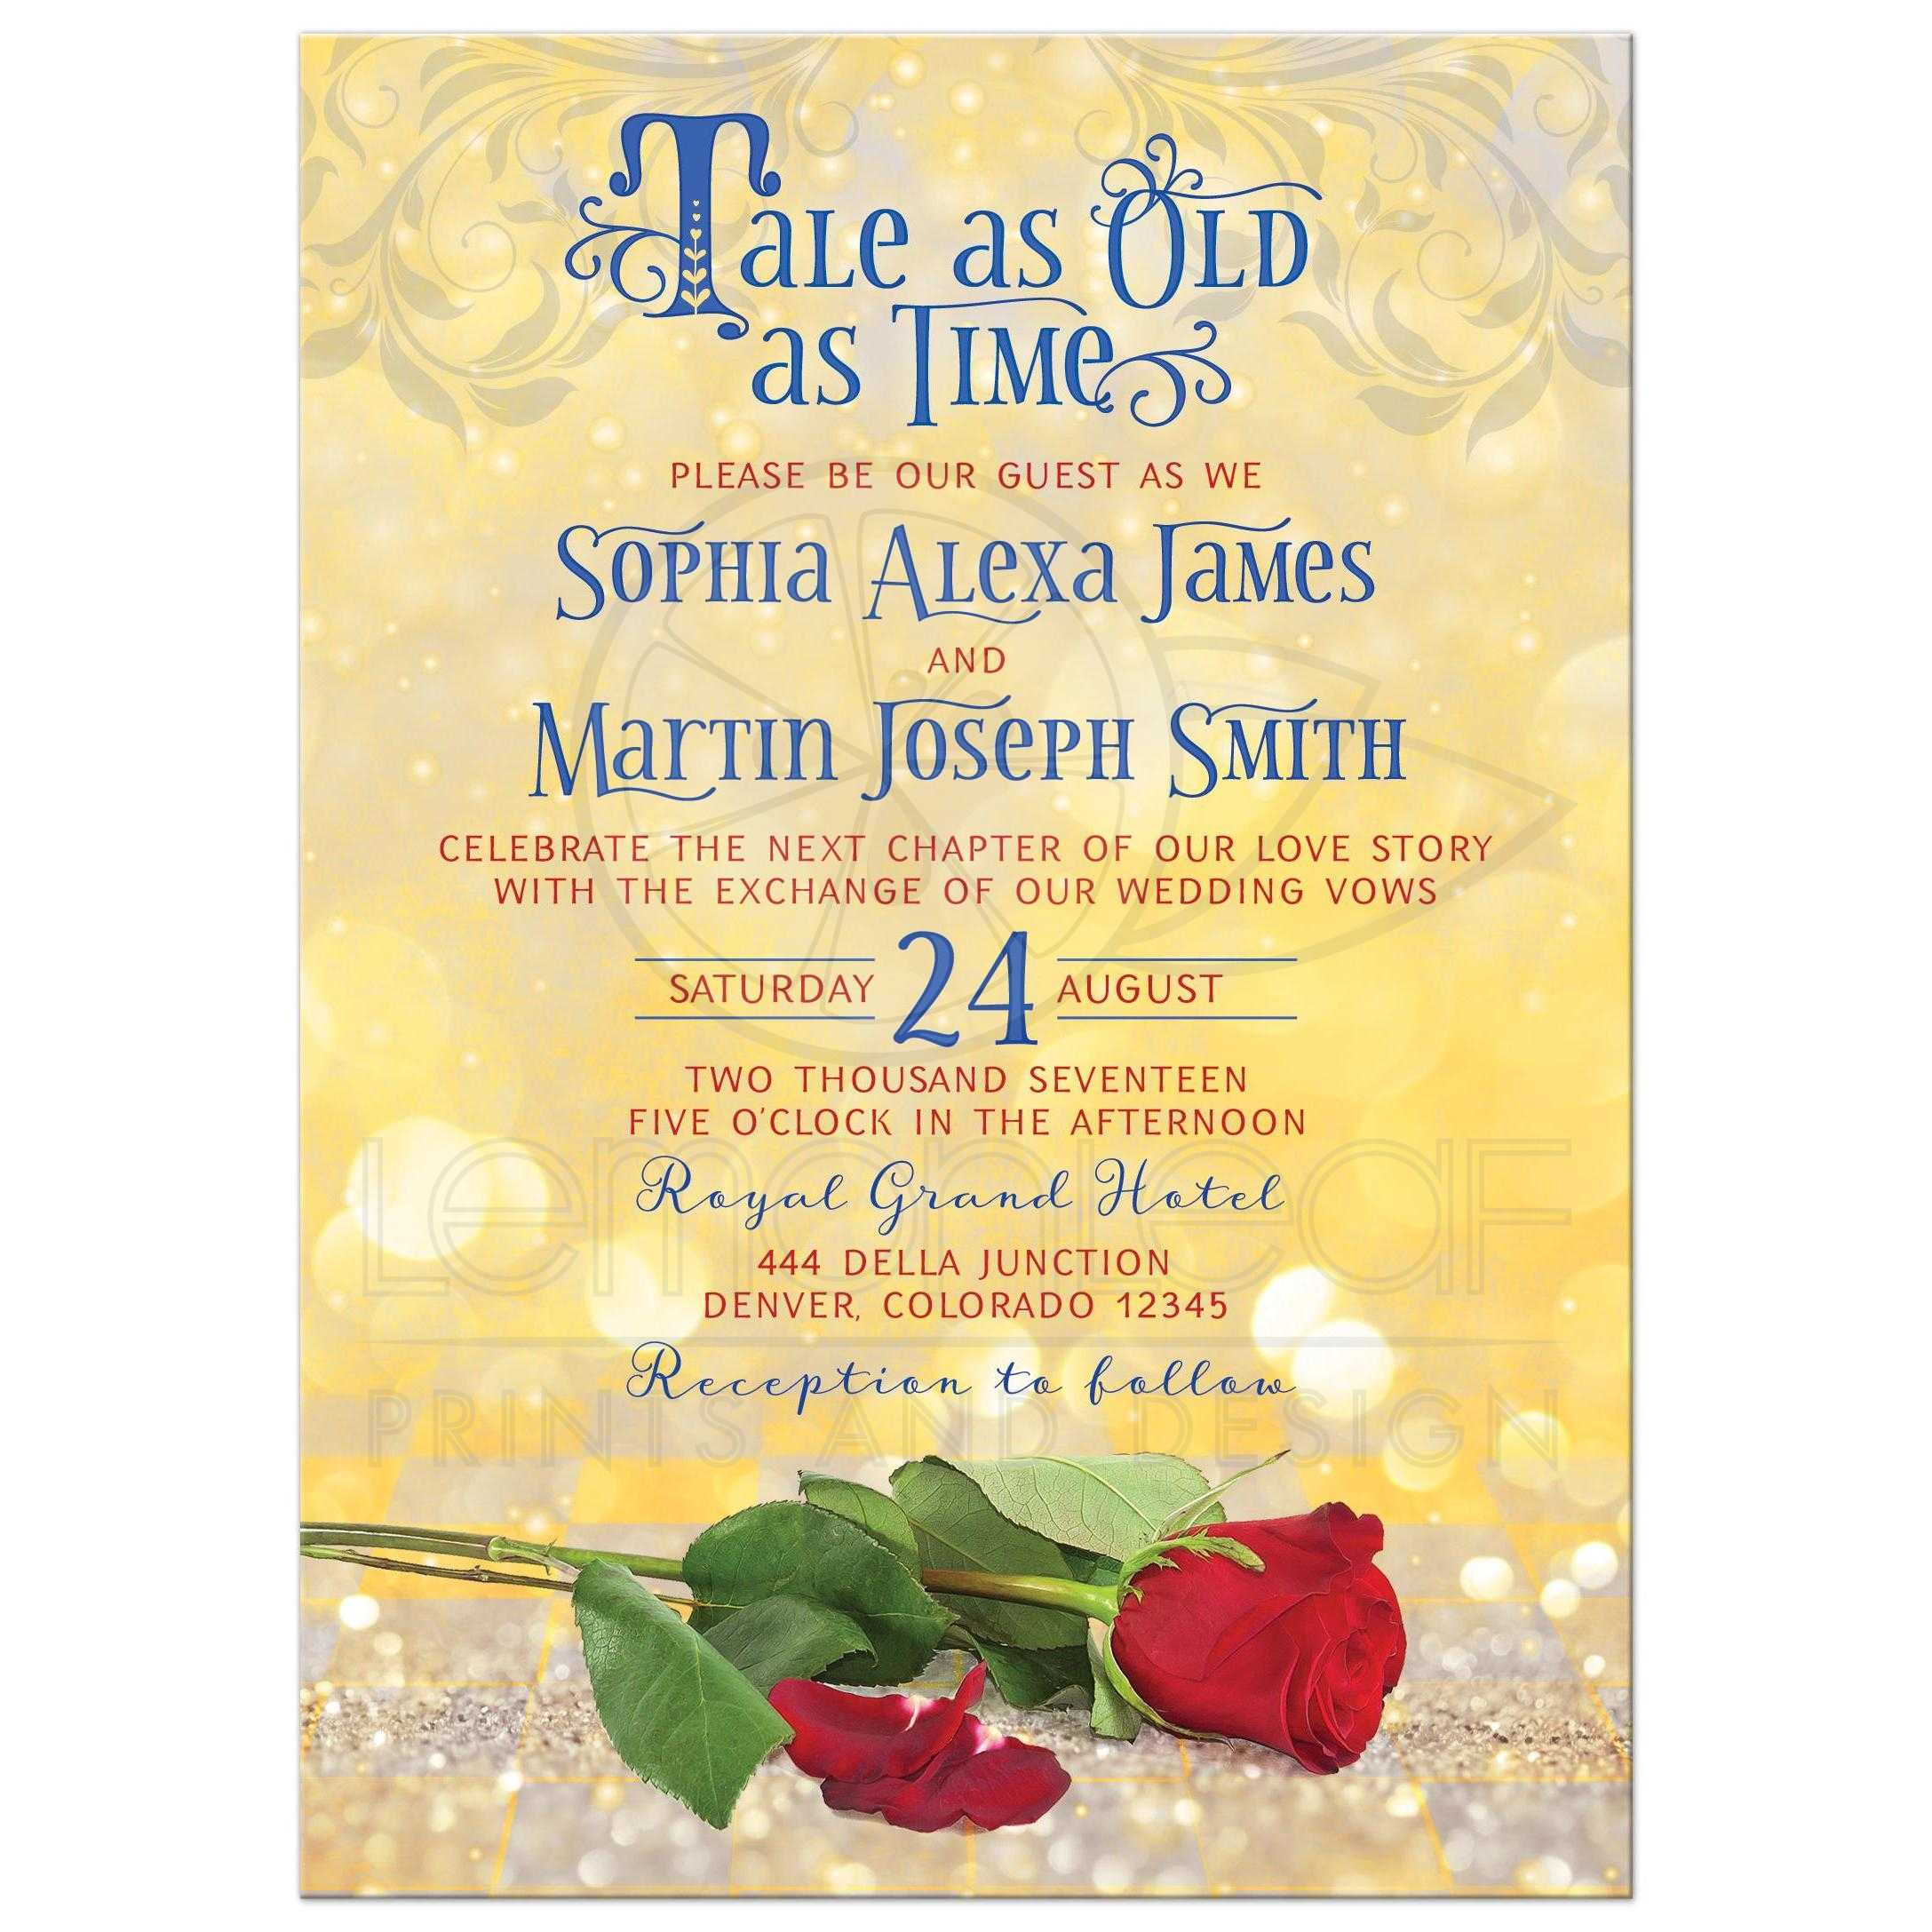 Fairytale Tale as Old as Time Wedding Invitation